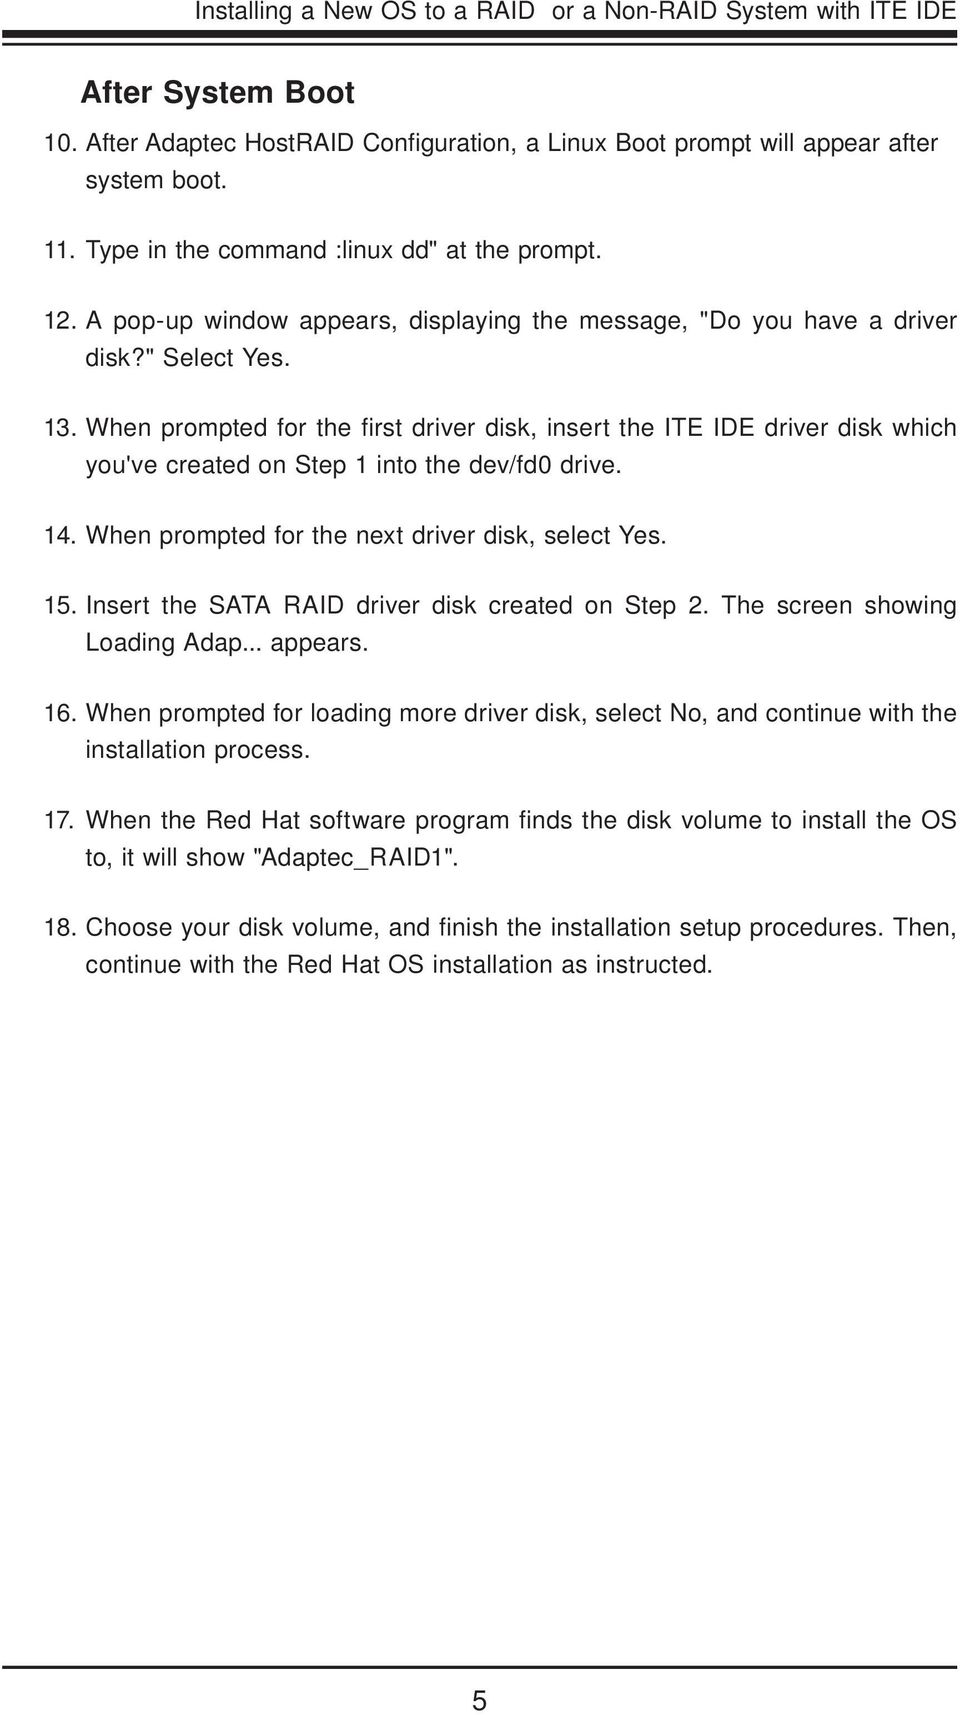 1 When prompted for the fi rst driver disk, insert the ITE IDE driver disk which you've created on Step 1 into the dev/fd0 drive. 1 When prompted for the next driver disk, select Yes.